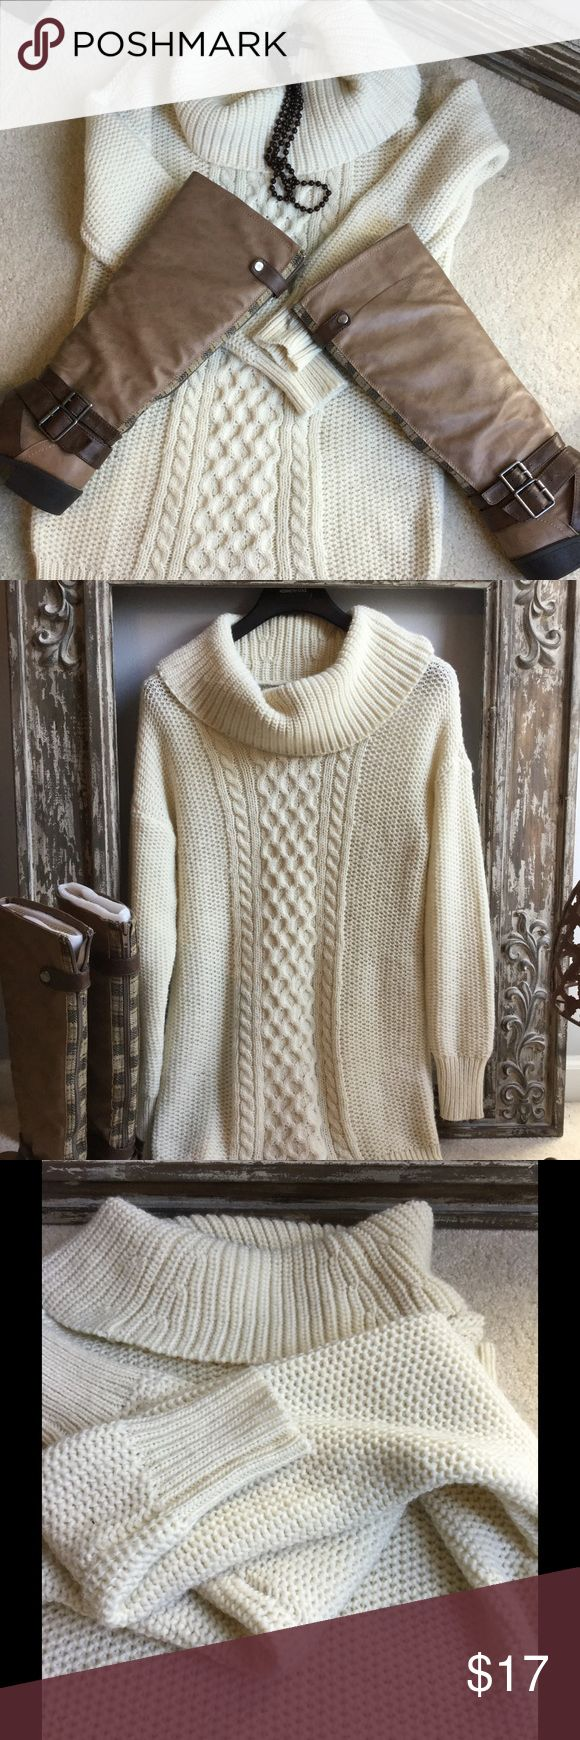 American Eagle outfitters cream sweater dress❤️❤️ American Eagle outfitters cream sweater dress. Sweater dress very cute with tall boots. Only wore a couple times. Sweater has very light wear to the overall sweater material. American Eagle Outfitters Dresses